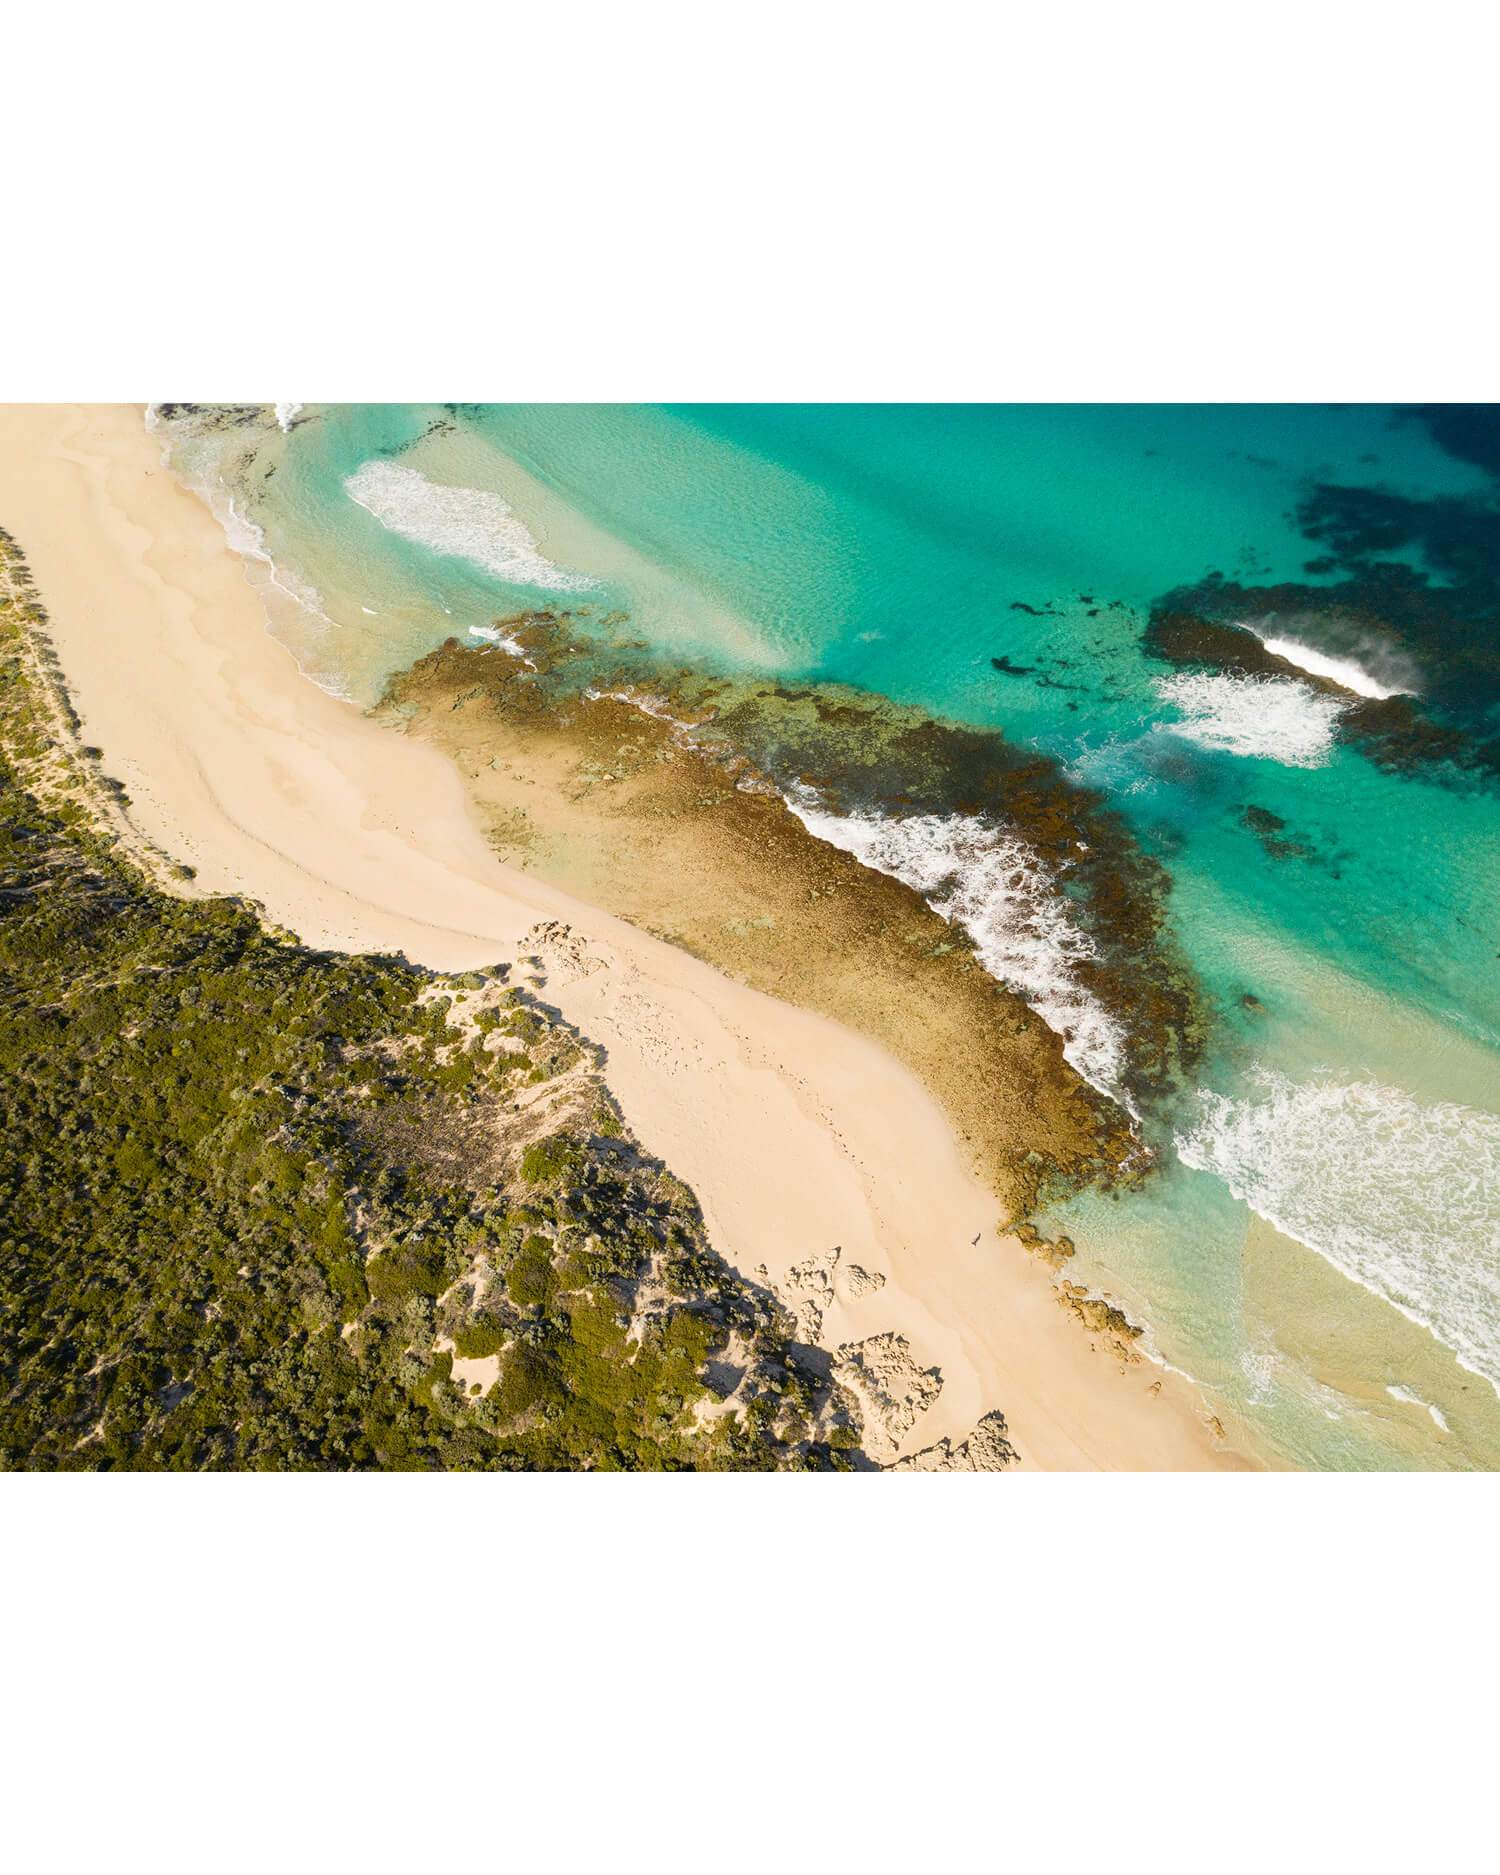 Azure Co - Landscape and Surf Photography, Smiths Beach Western Australia